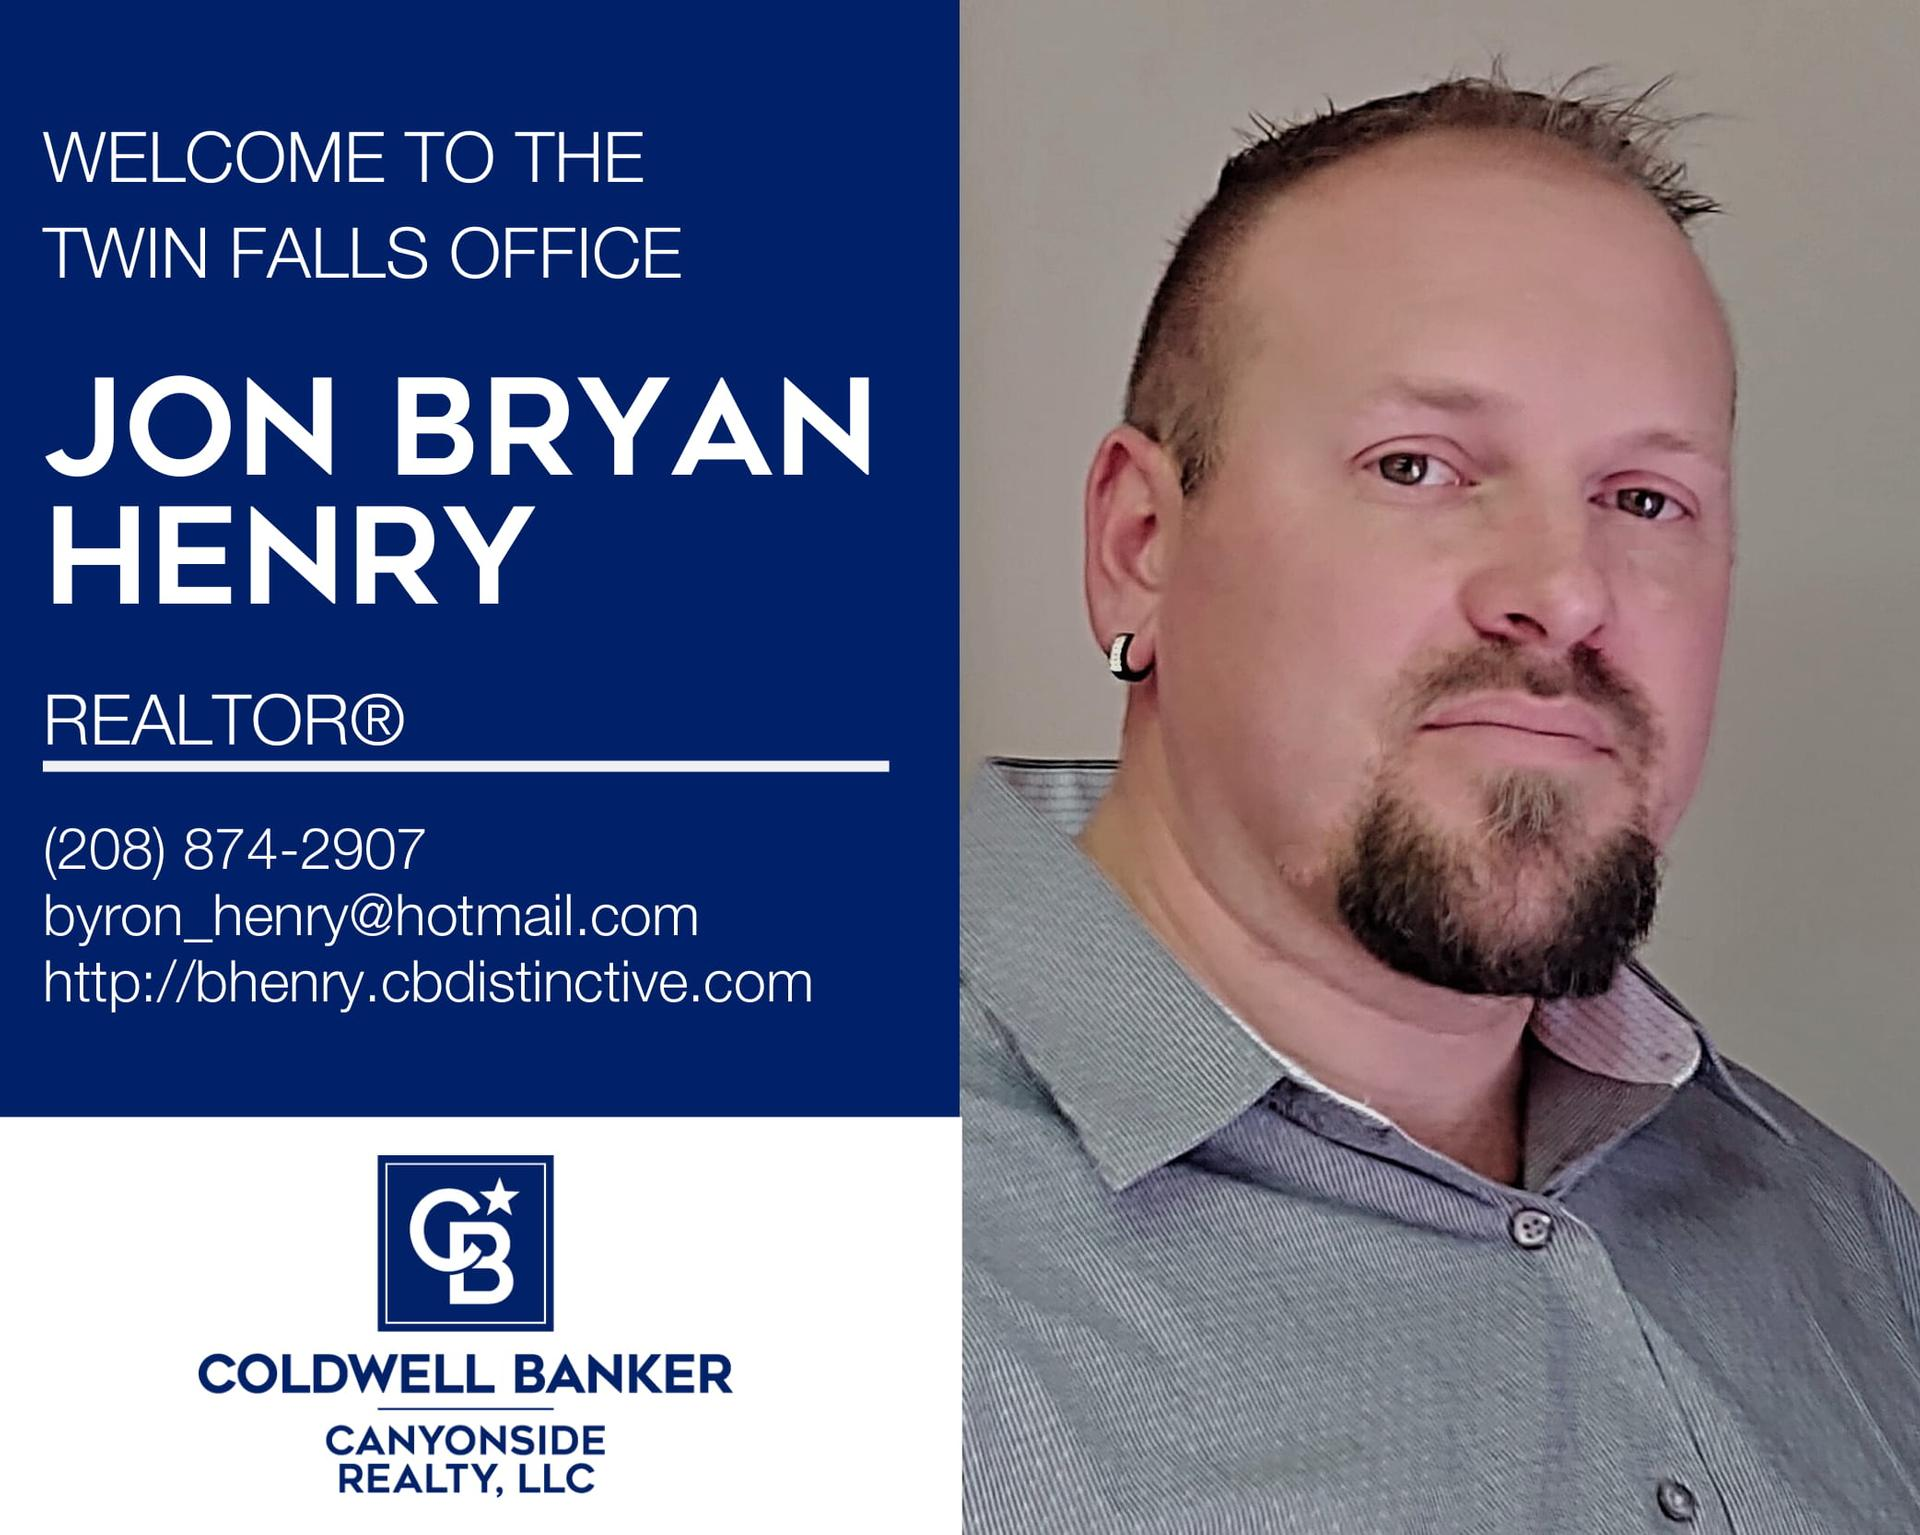 Please help us welcome Jon Bryan Henry to Coldwell Banker Canyonside Realty! Main Photo